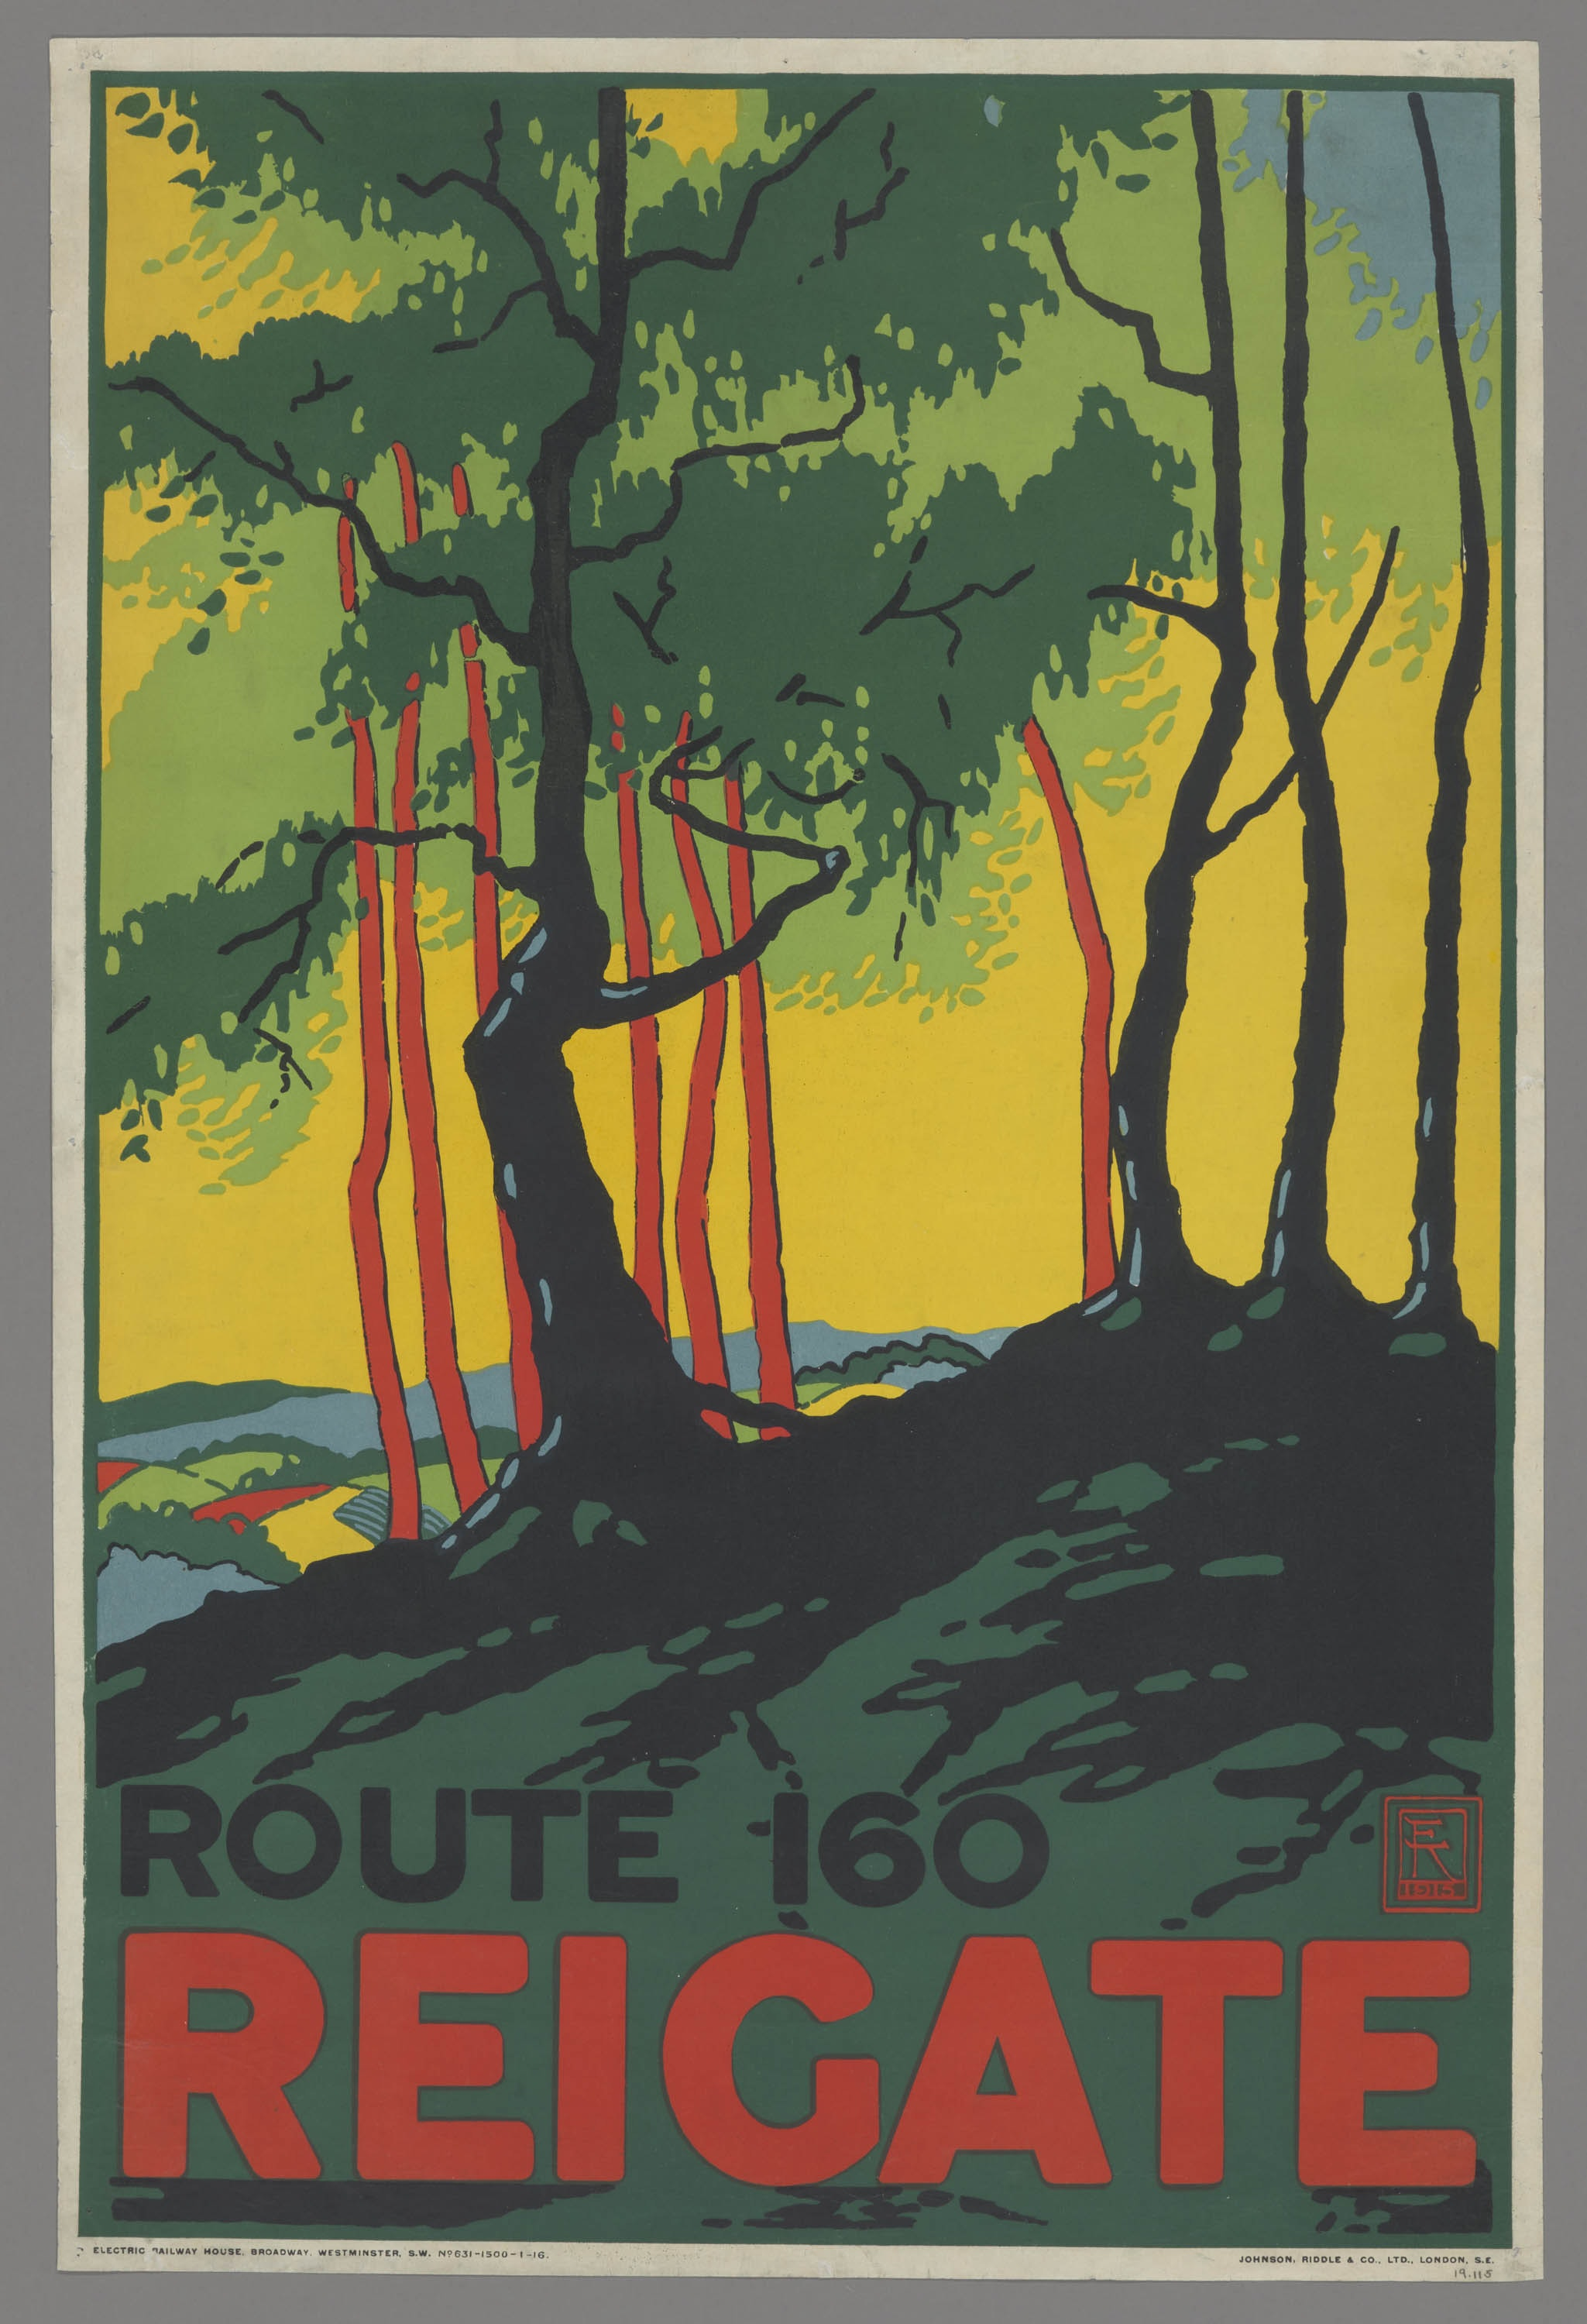 A poster for the London Underground depicting trees against a yellow sky.